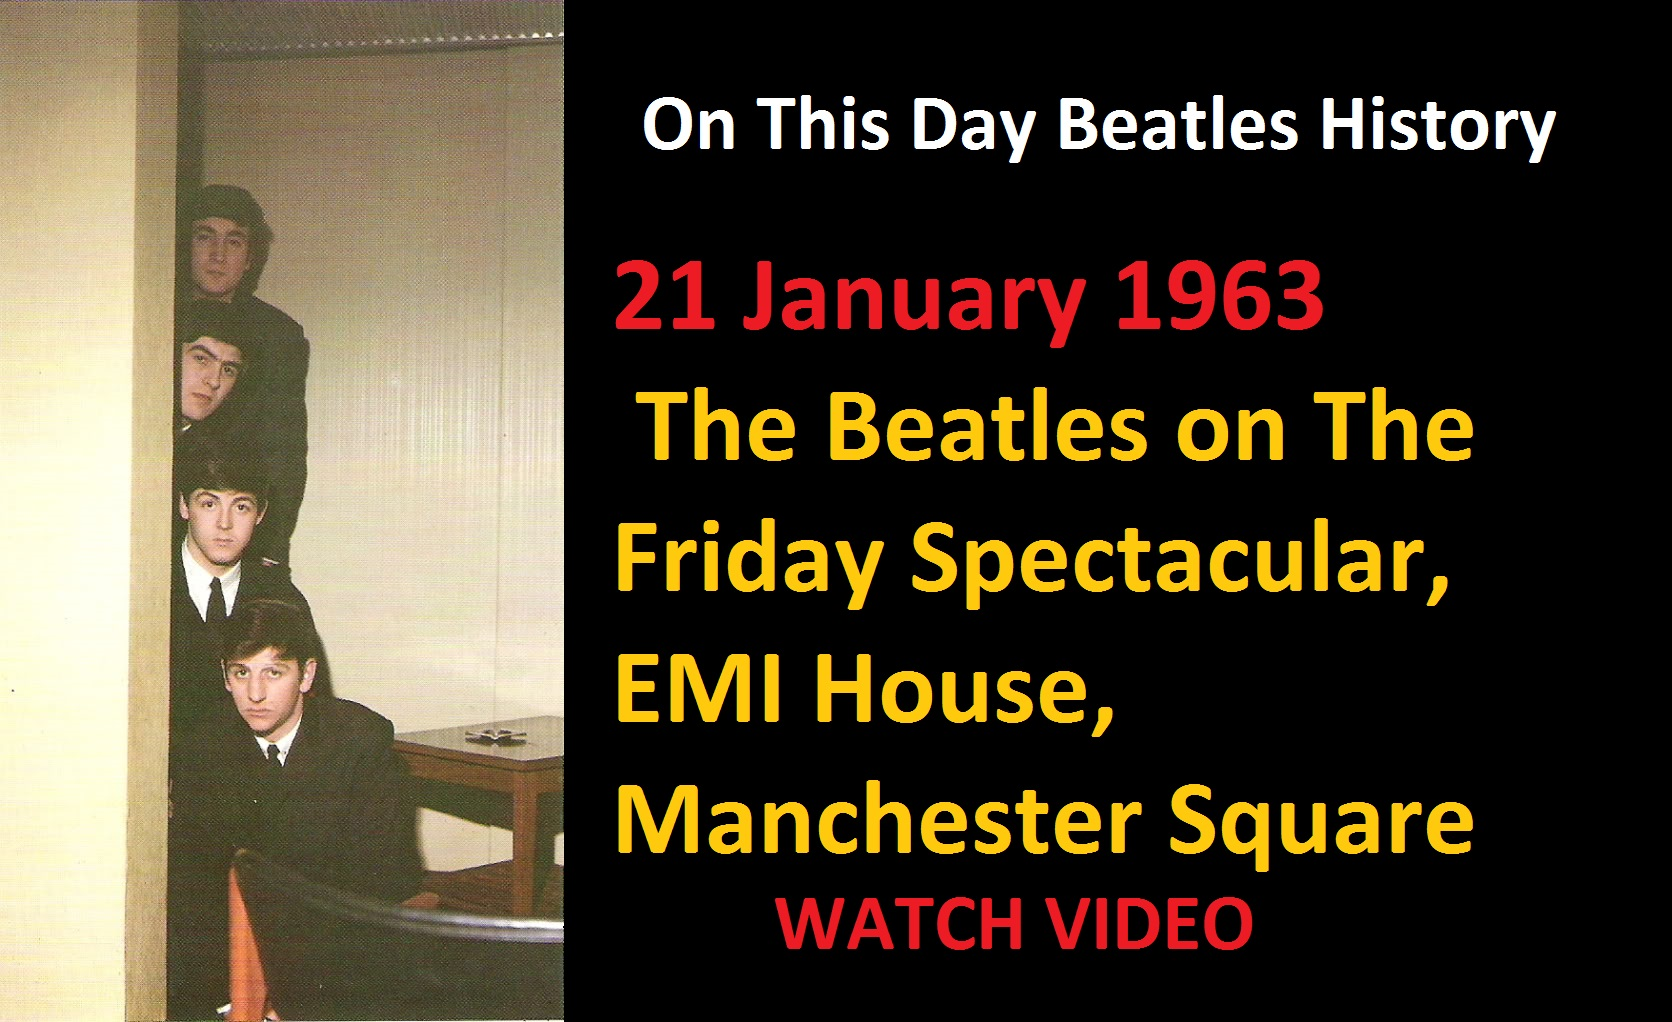 21 January 1963 - The Beatles on The Friday Spectacular, EMI House, Manchester Square